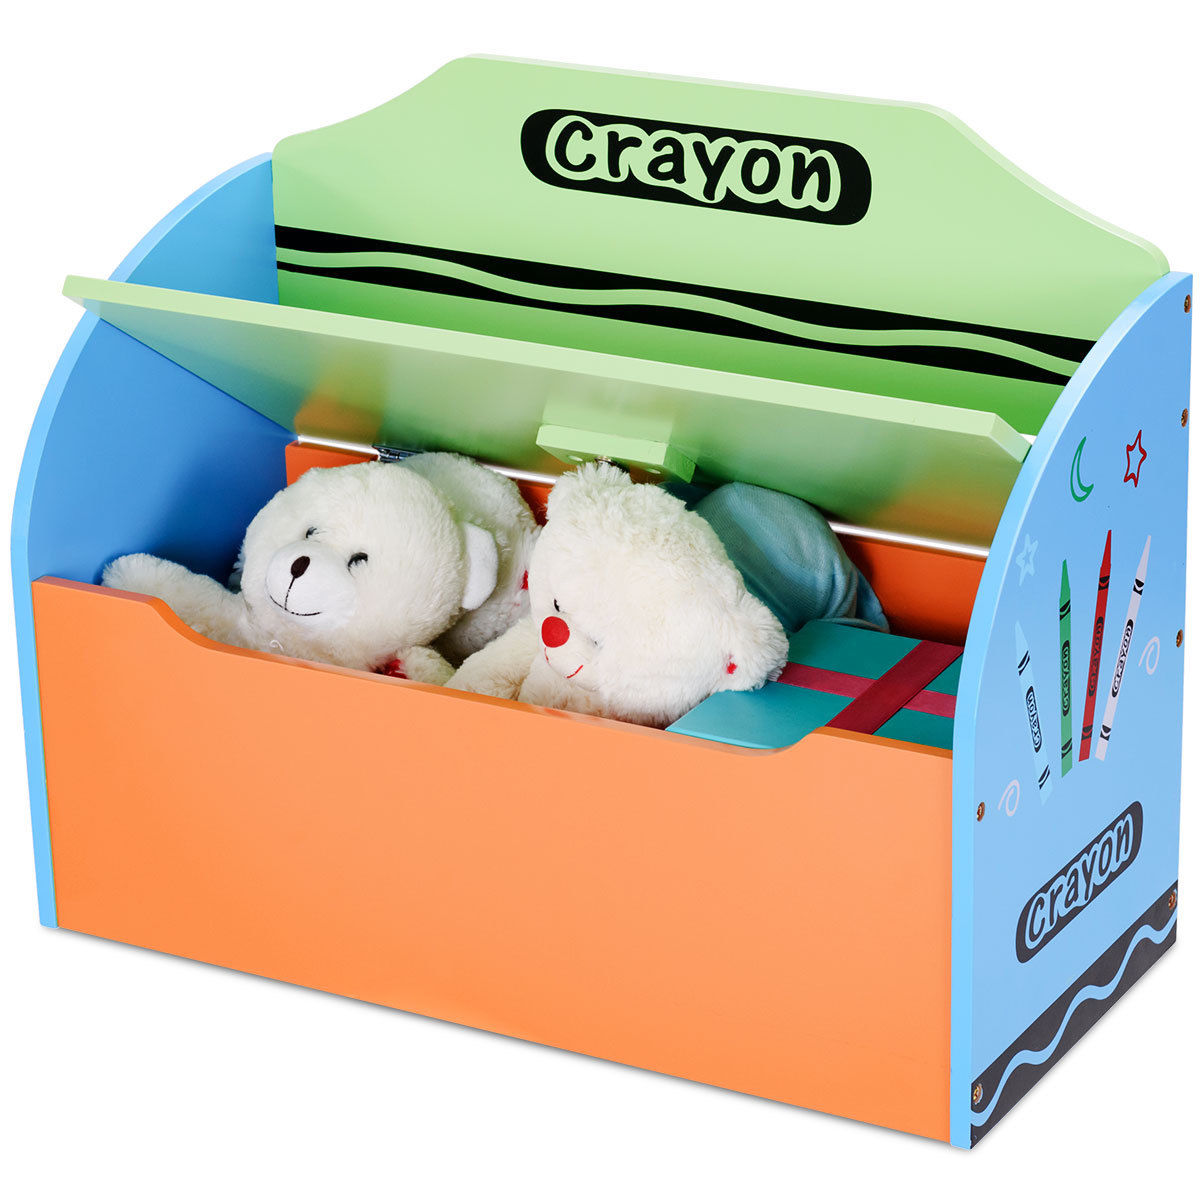 Ordinaire Gymax Crayon Themed Wood Toy Storage Box And Bench For Kids Toddler  Children Colorful